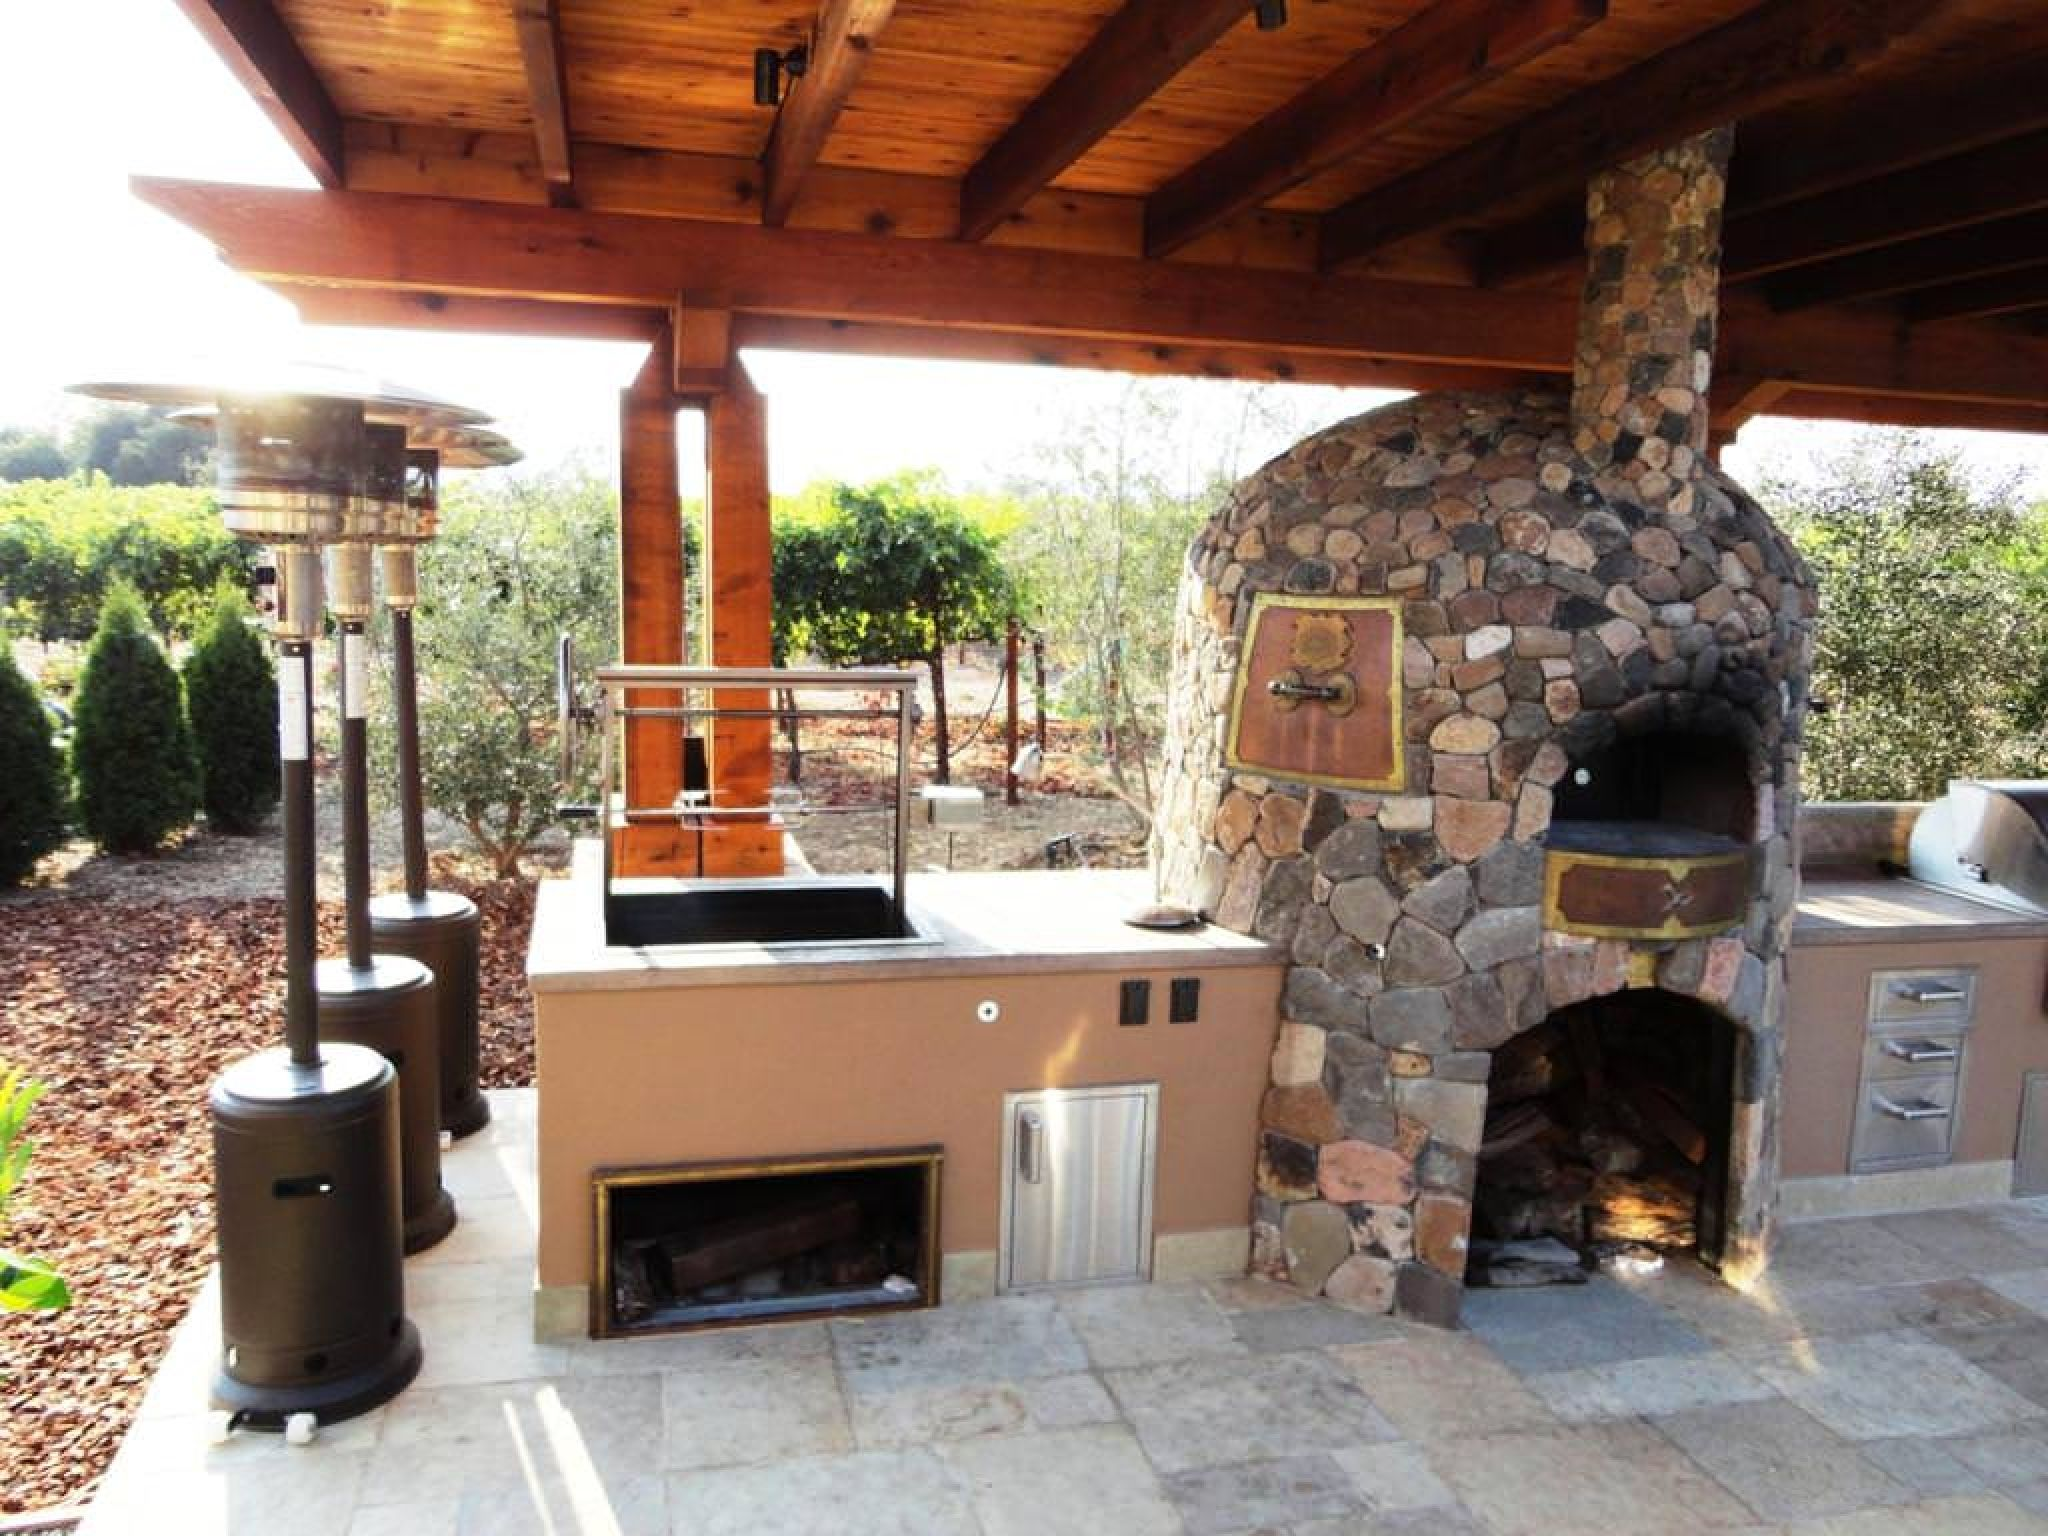 Outdoor Kitchen Designs With Pizza Oven Alluring Outdoor Kitchen With Pizza Oven Plans  Interior Paint Color Inspiration